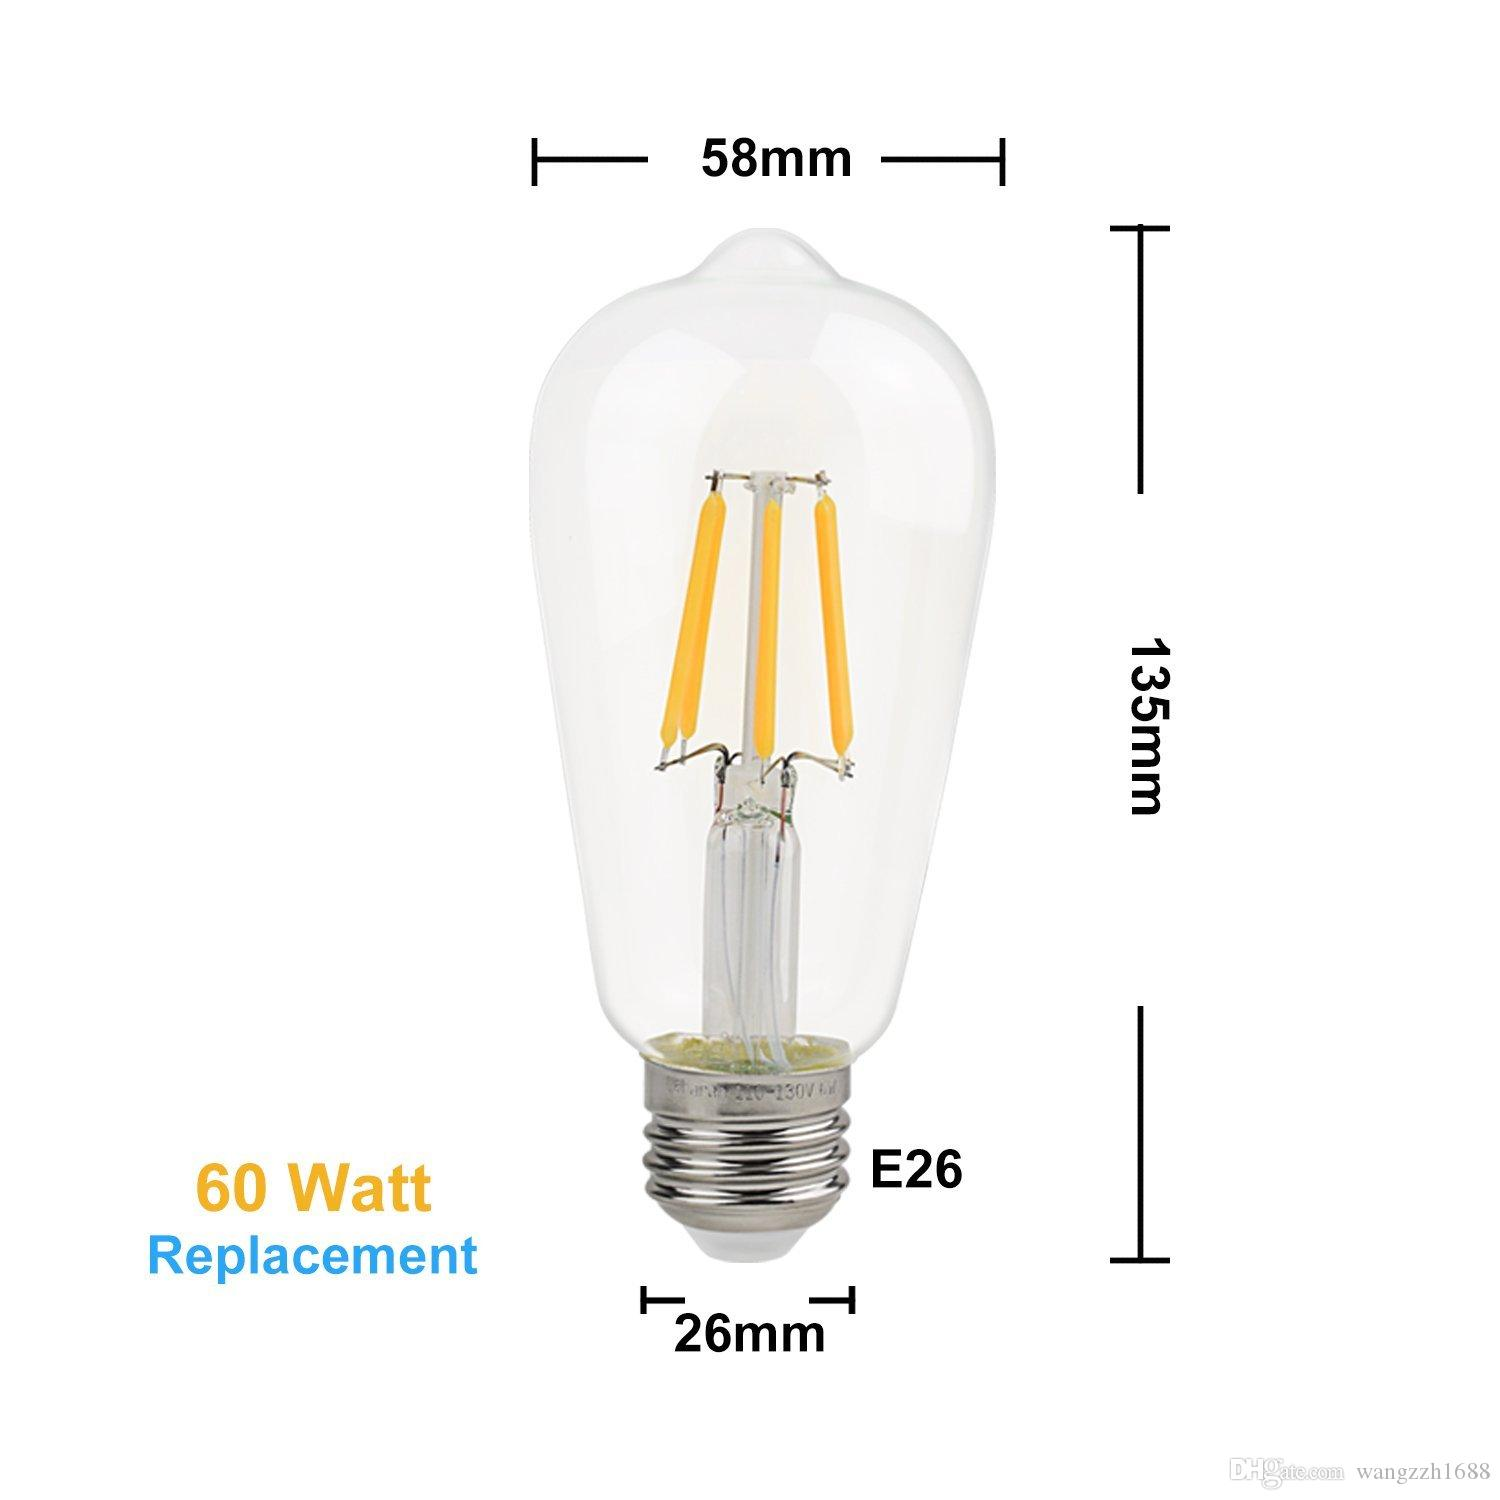 Meegan 4w Led Tungsten Light Bulb, 400lm, 40w Incandescent Equivalent,  220v, E27 E26 Base, 2700k Warm White, Clear Glass Cover Dimmable Led Bulbs  Gu10 Led ...